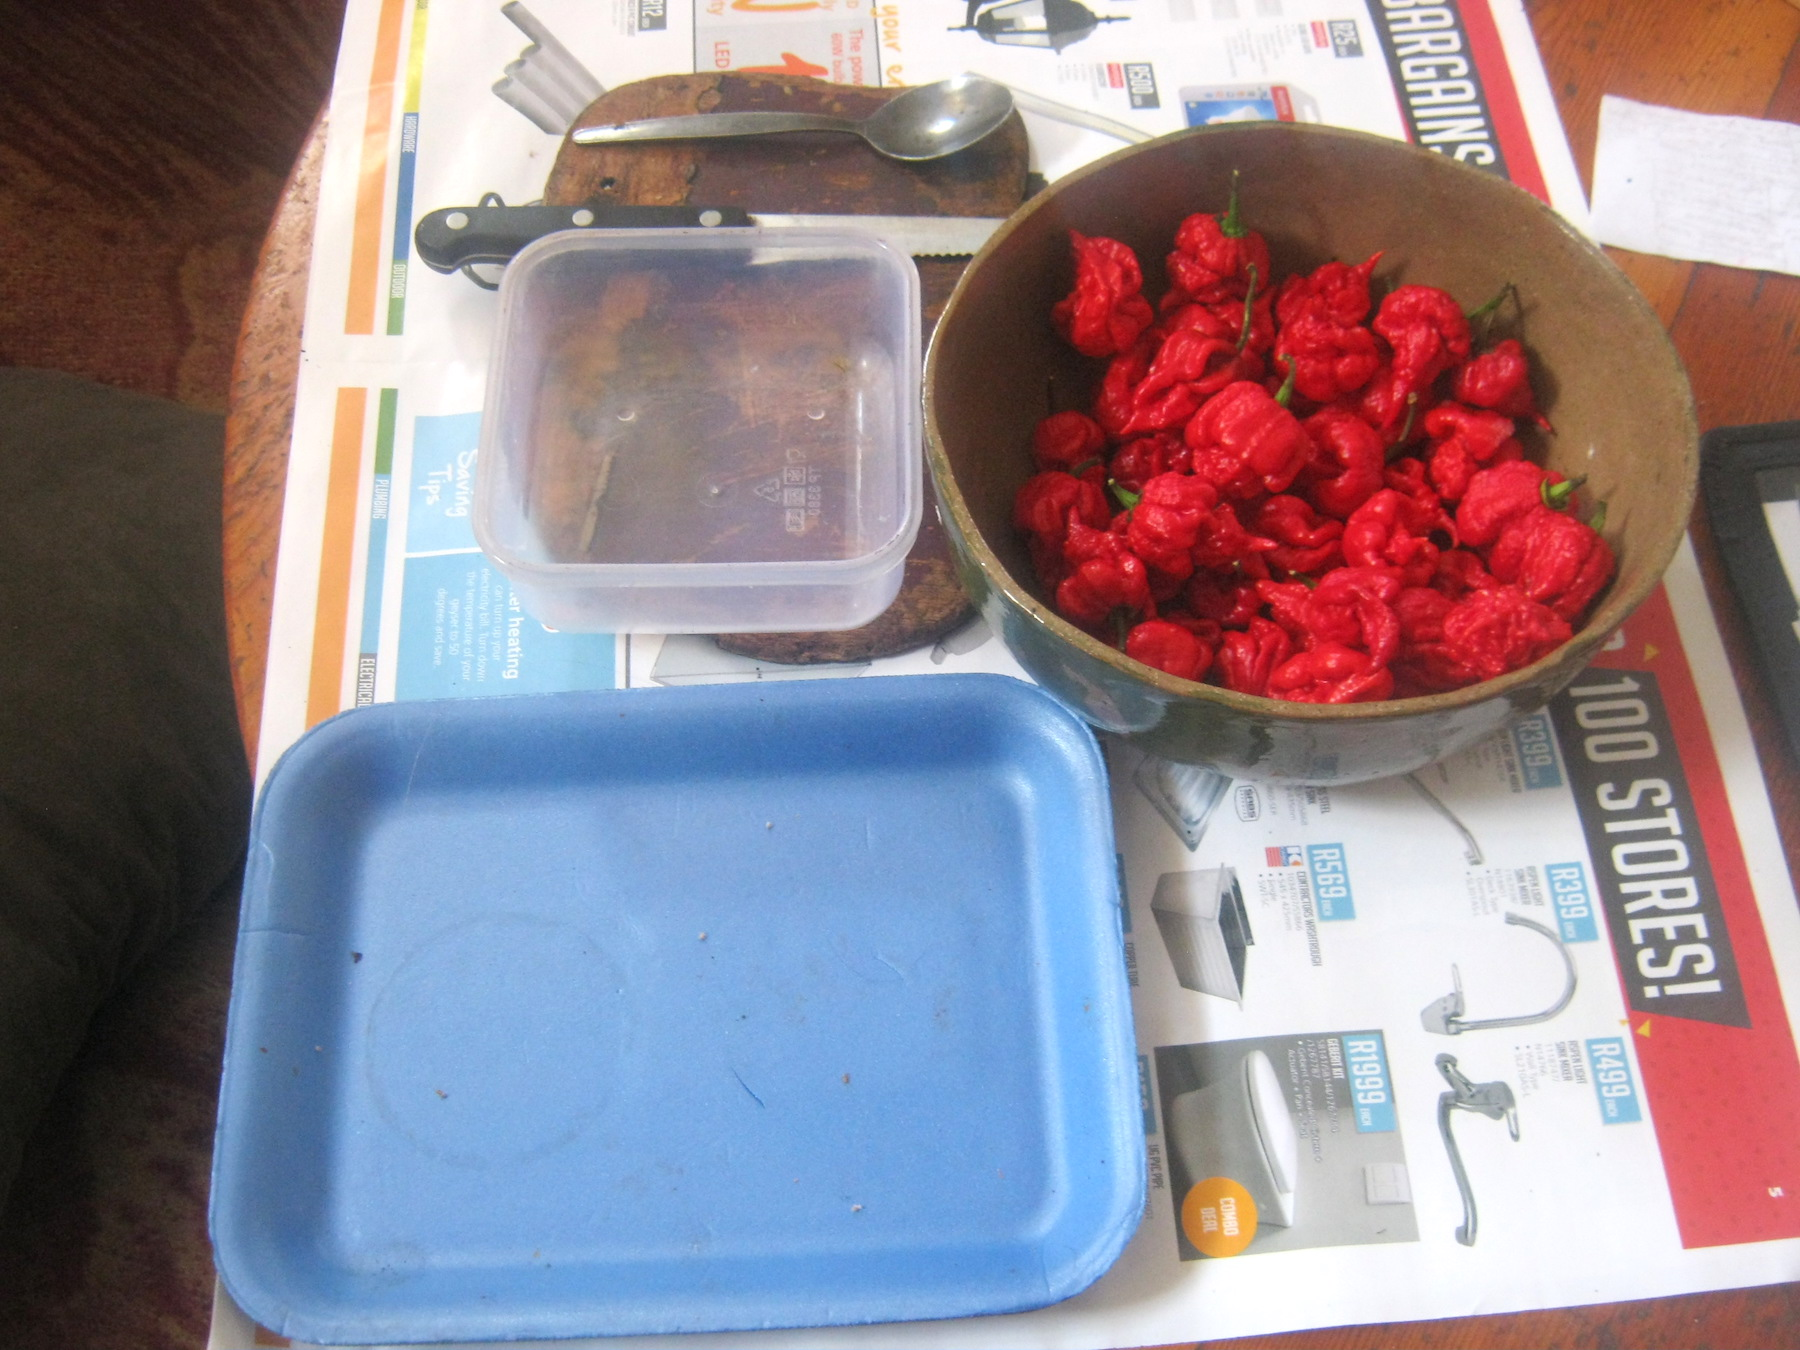 Ripe Carolina Reaper chilis and tools for seed harvesting on a table